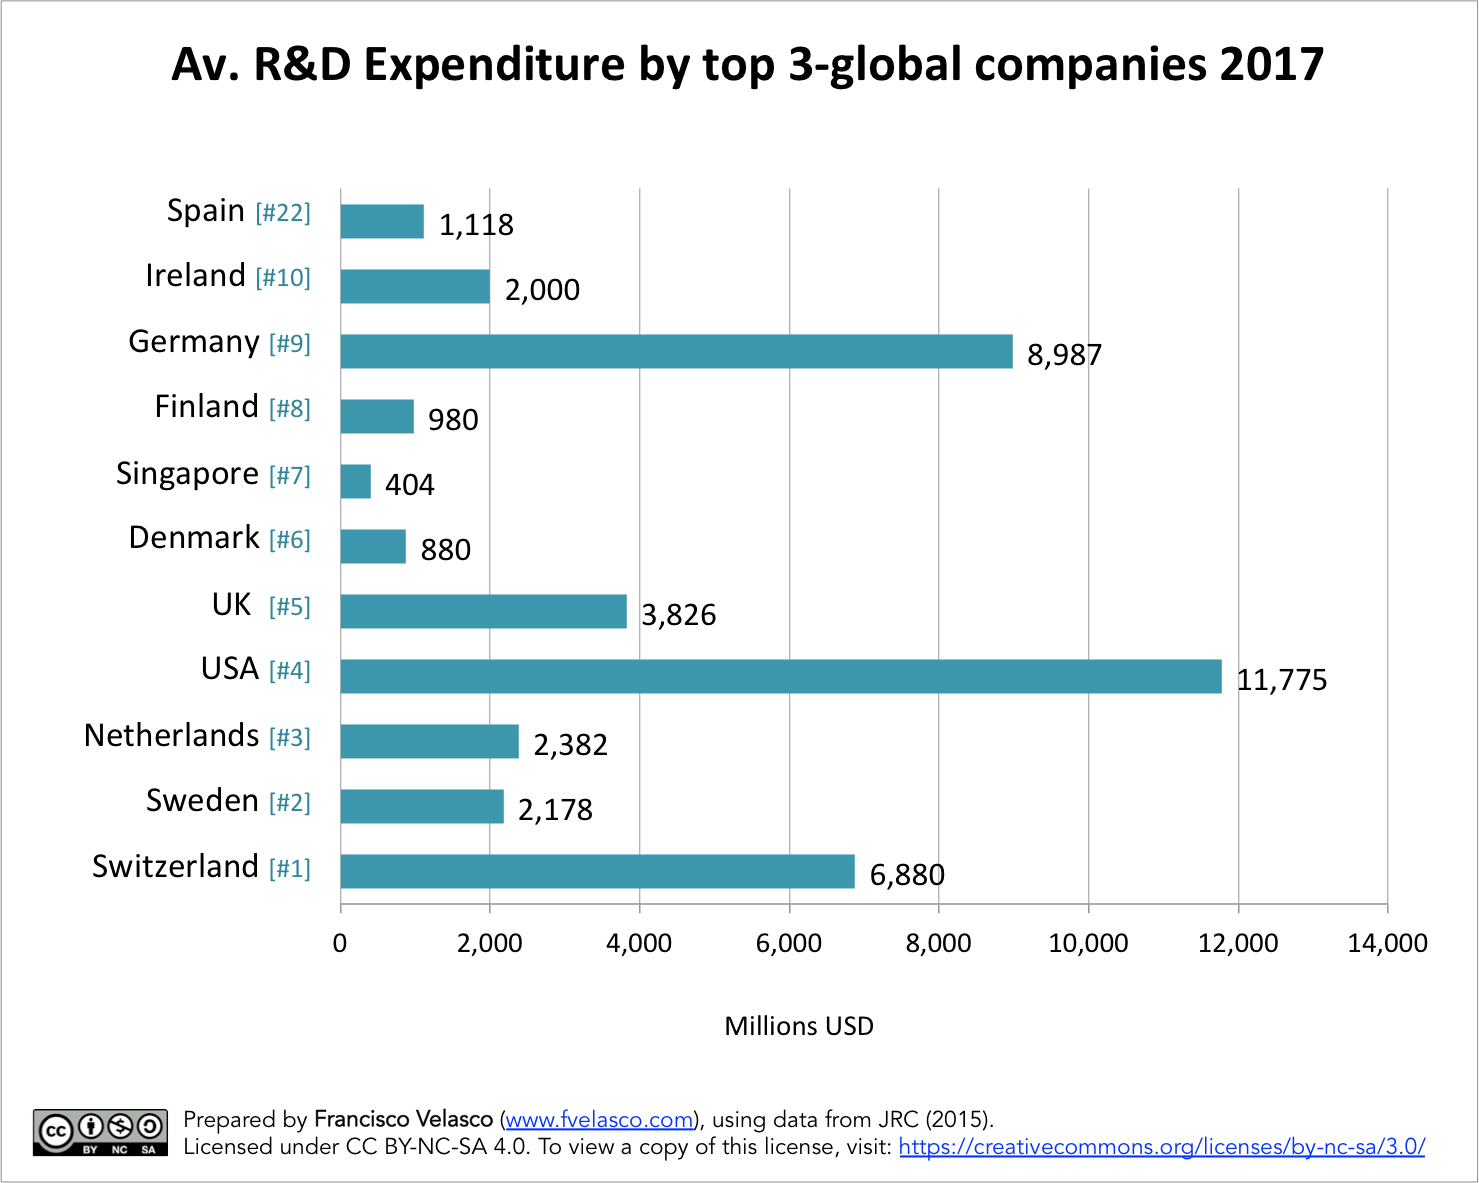 Average Expenditure in R&D by the top 3-global companies in the most innovative countries in the world in comparison to Spain. Prepared by Francisco Velasco (www.fvelasco.com). Source: JRC (2015).